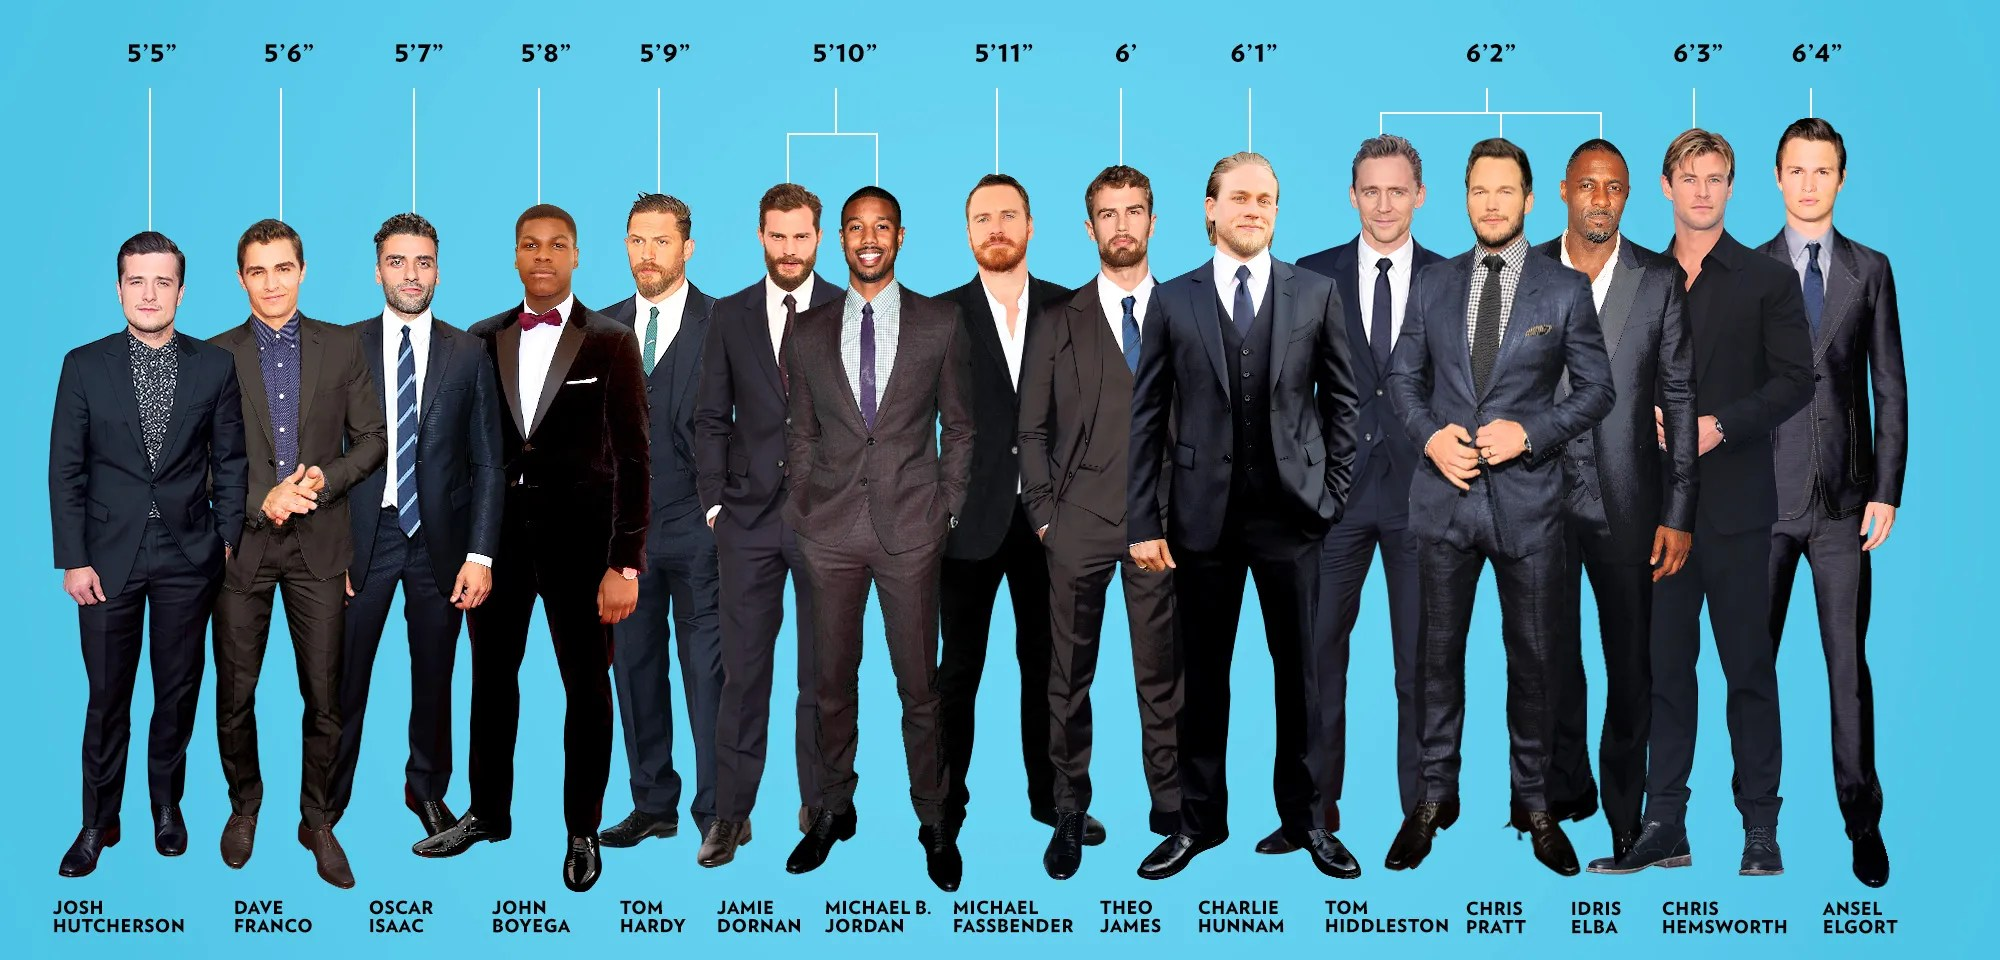 How Tall Are the New Movie Heartthrobs     Vulture Heights of various leading men